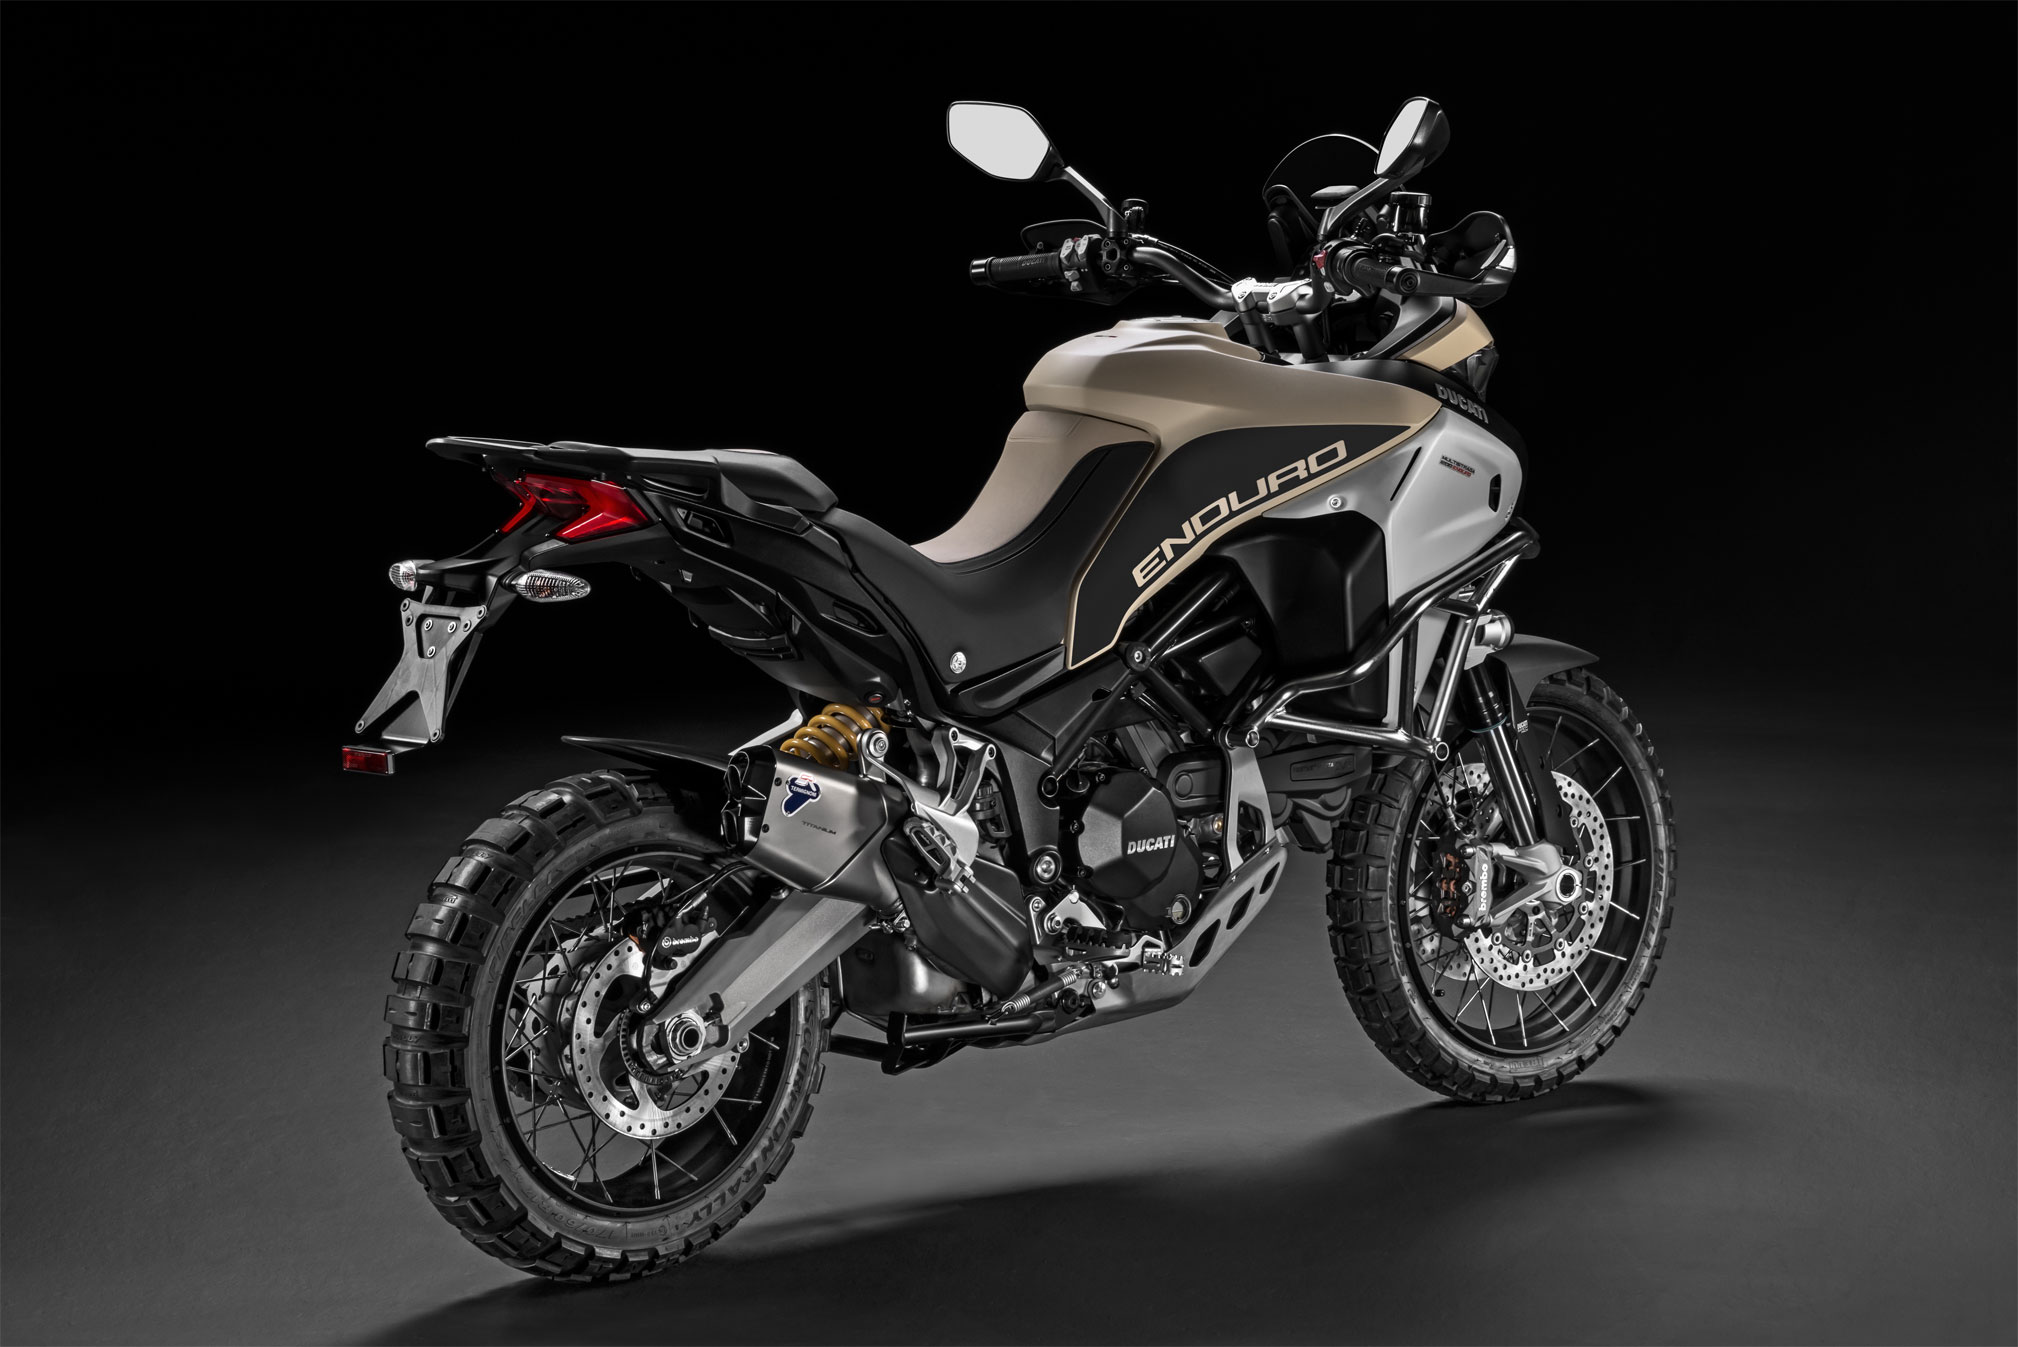 2018 ducati multistrada 1200 enduro pro review totalmotorcycle. Black Bedroom Furniture Sets. Home Design Ideas